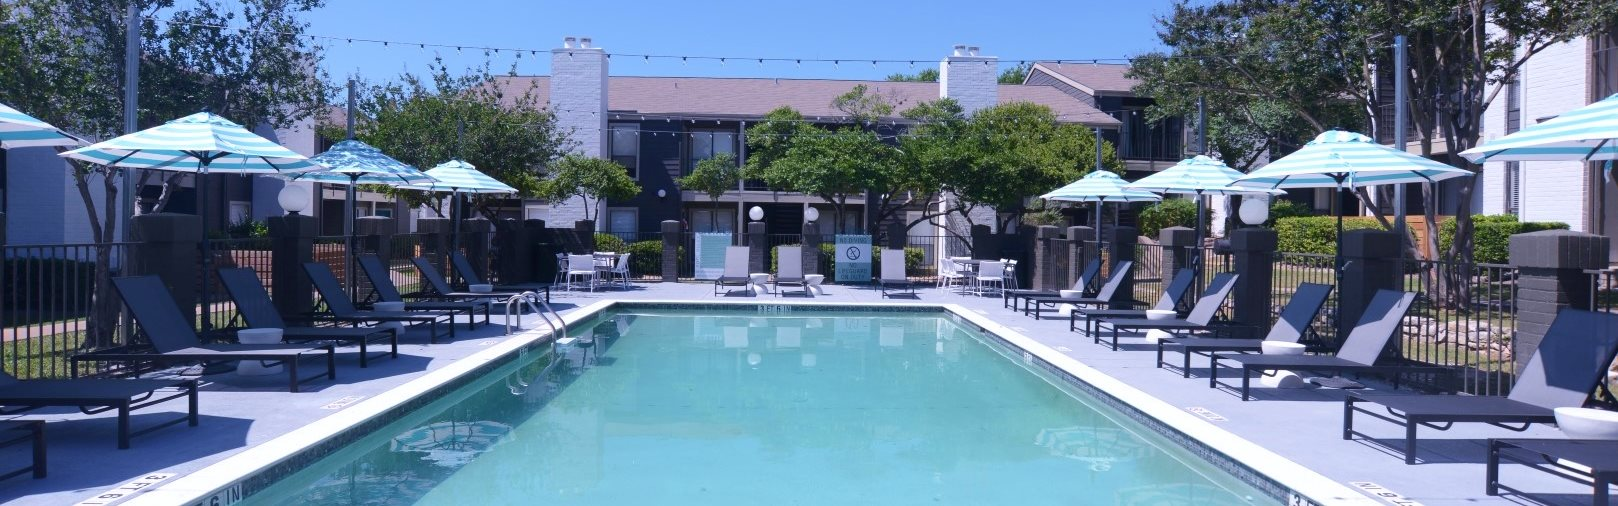 pool apartments in south austin